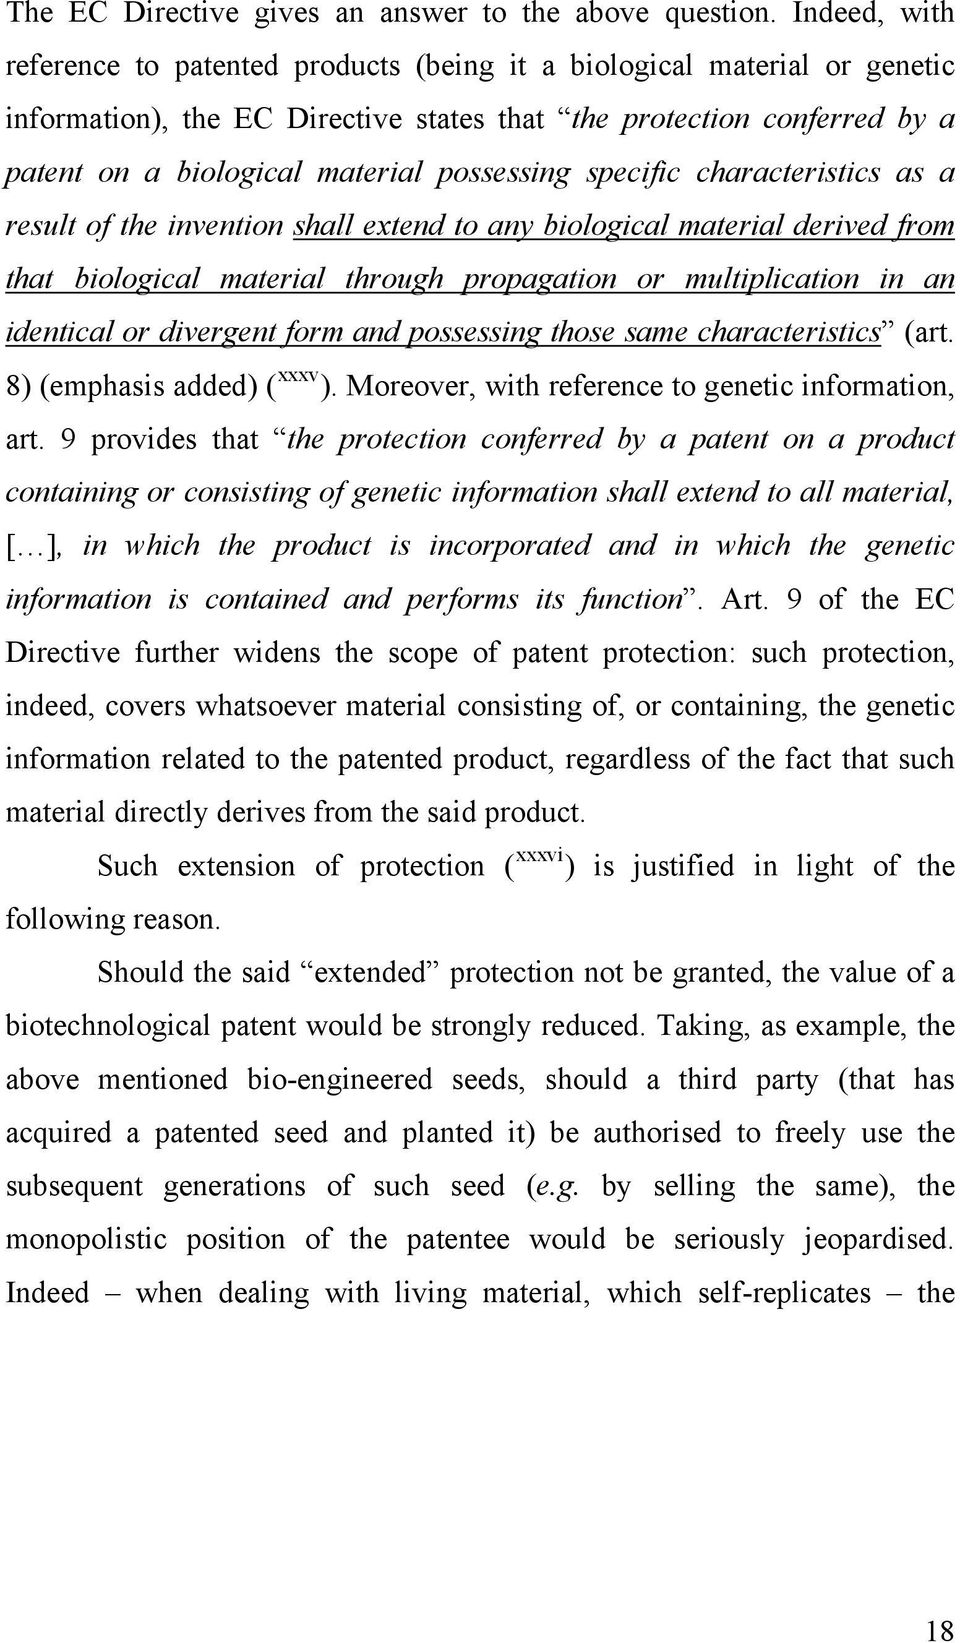 possessing specific characteristics as a result of the invention shall extend to any biological material derived from that biological material through propagation or multiplication in an identical or